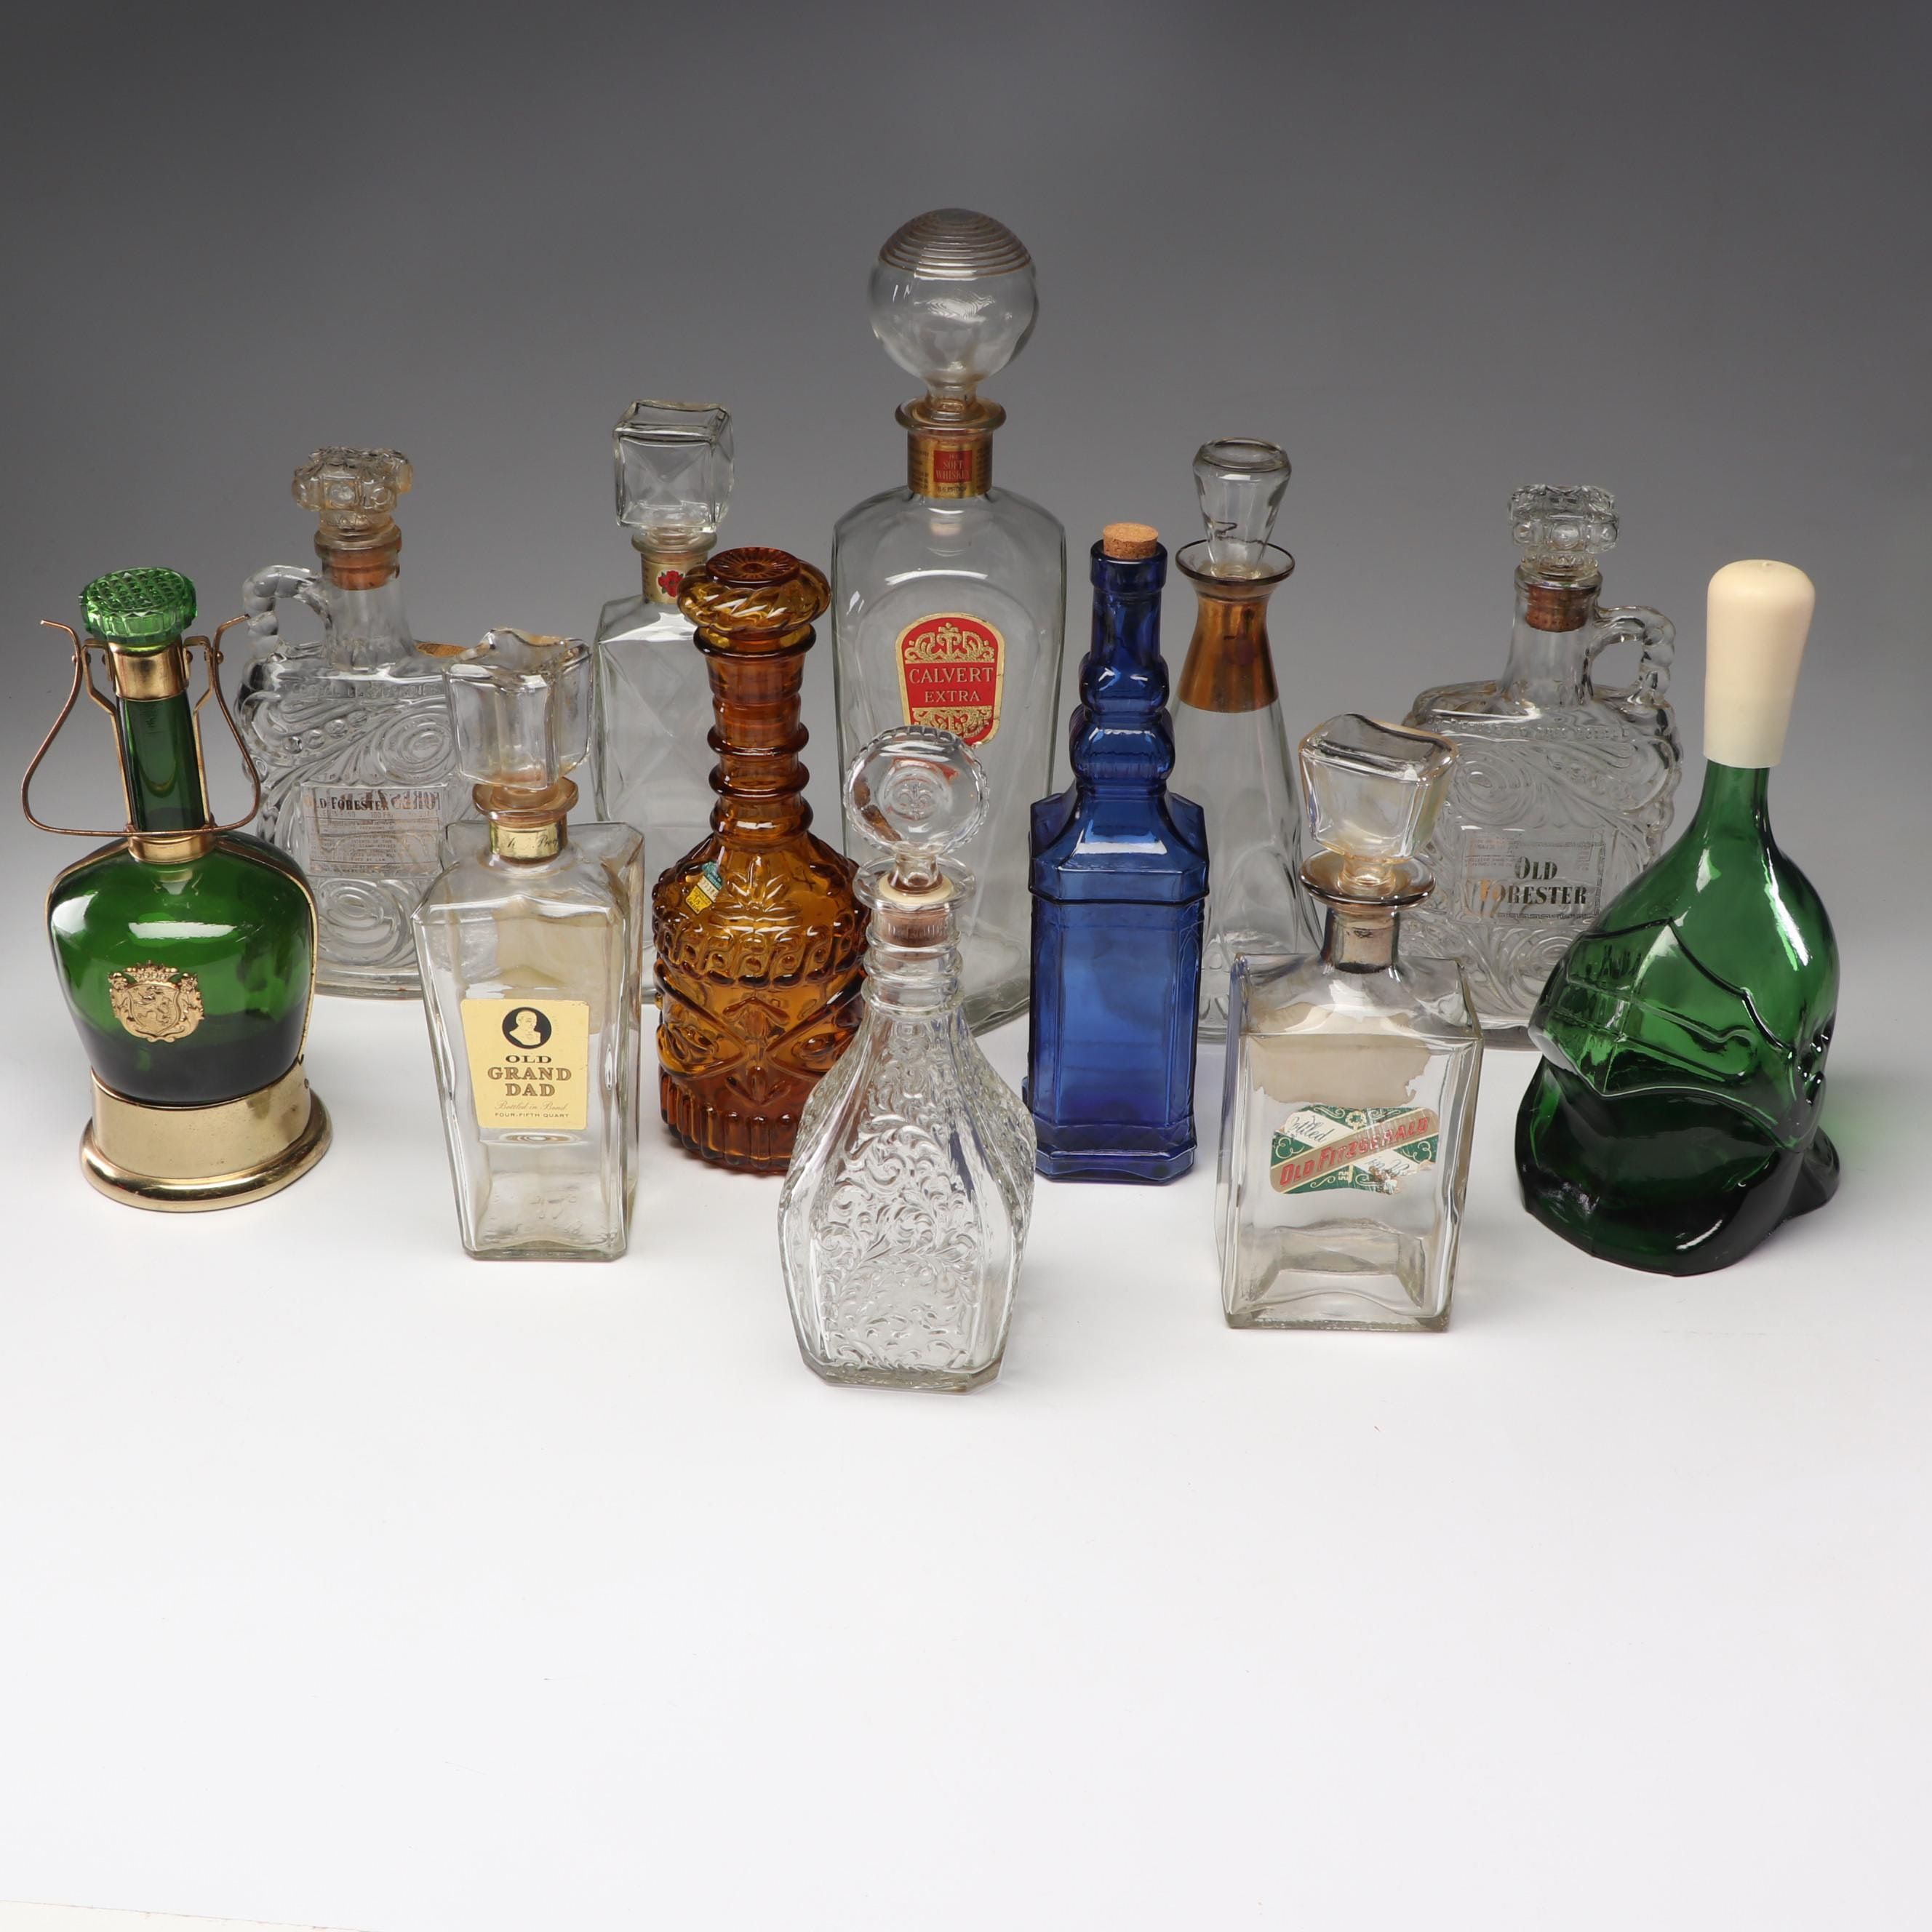 Vintage Decanters and Liquor Bottles Including Green Decanter with Music Box